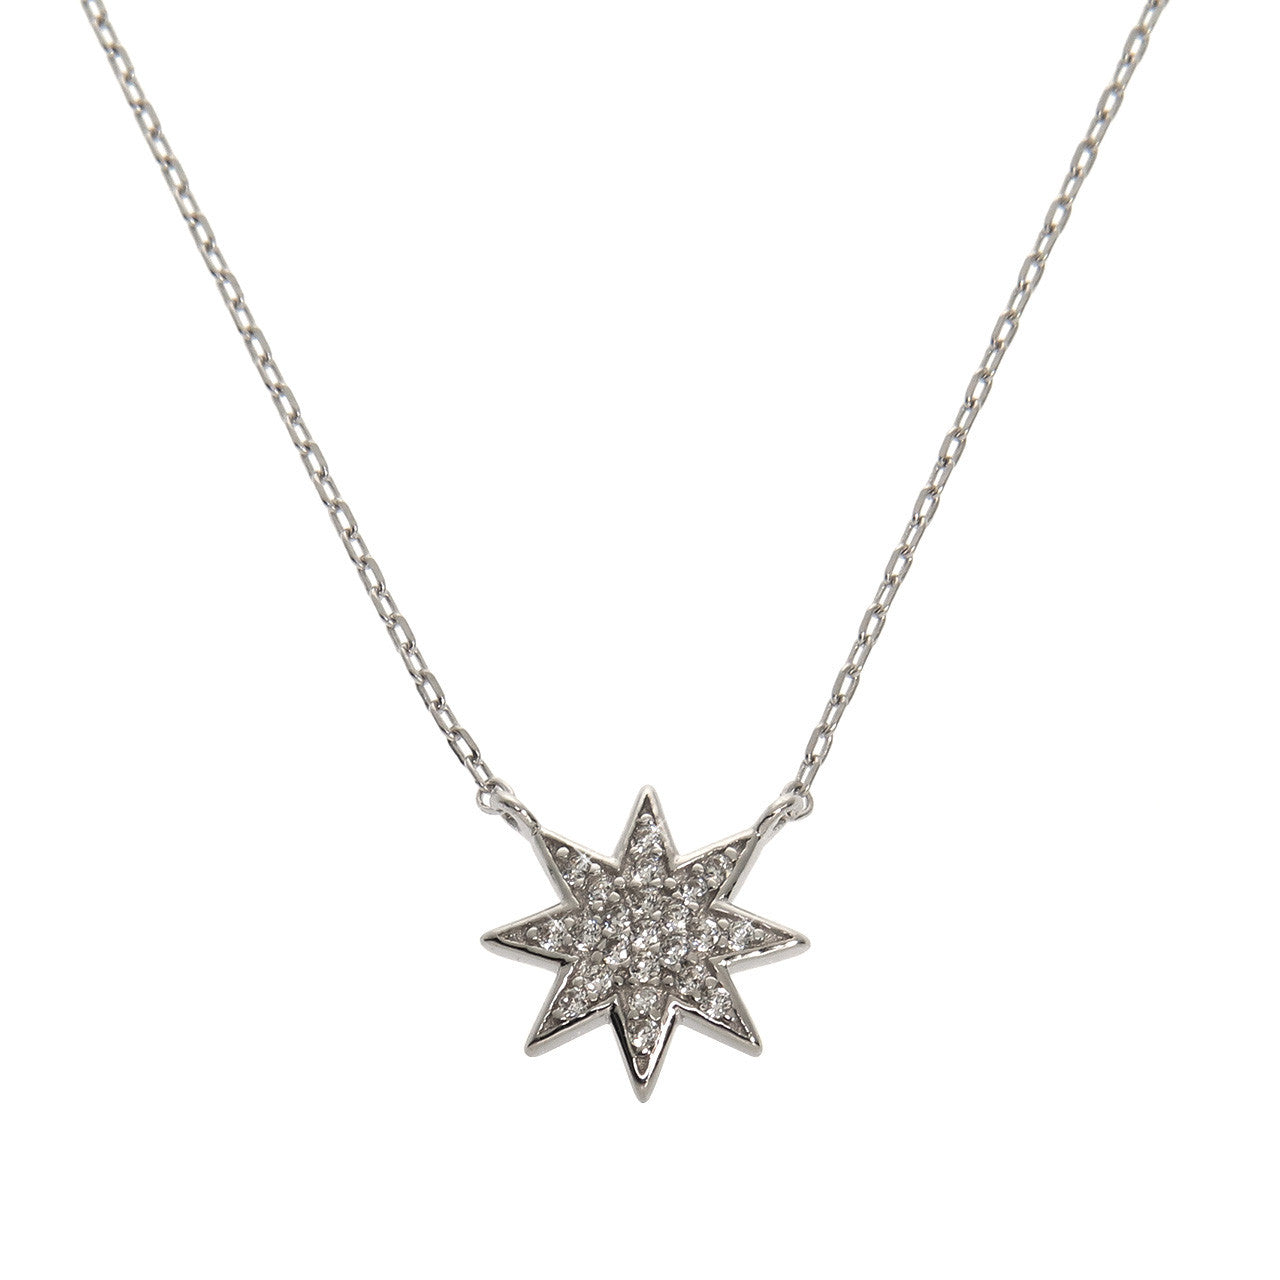 Solid Sterling Silver Starburst Necklace